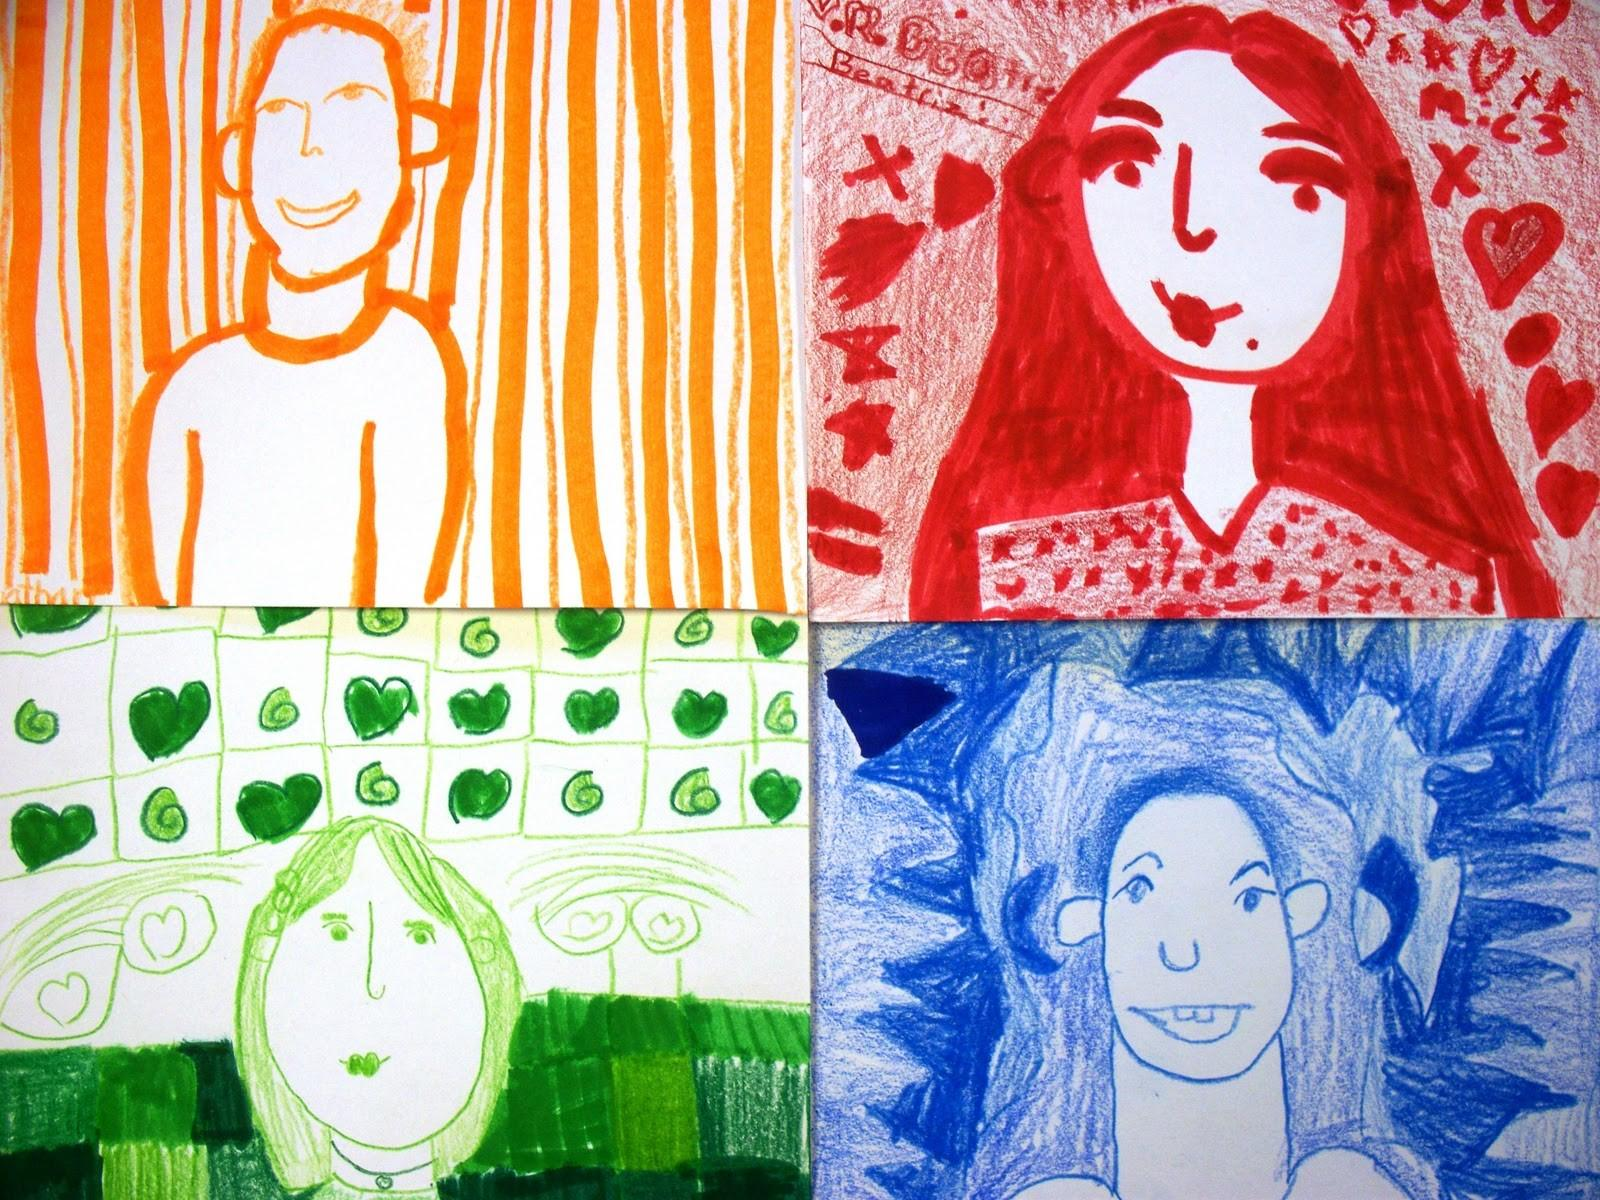 Creating Art Monochromatic Self Portraits